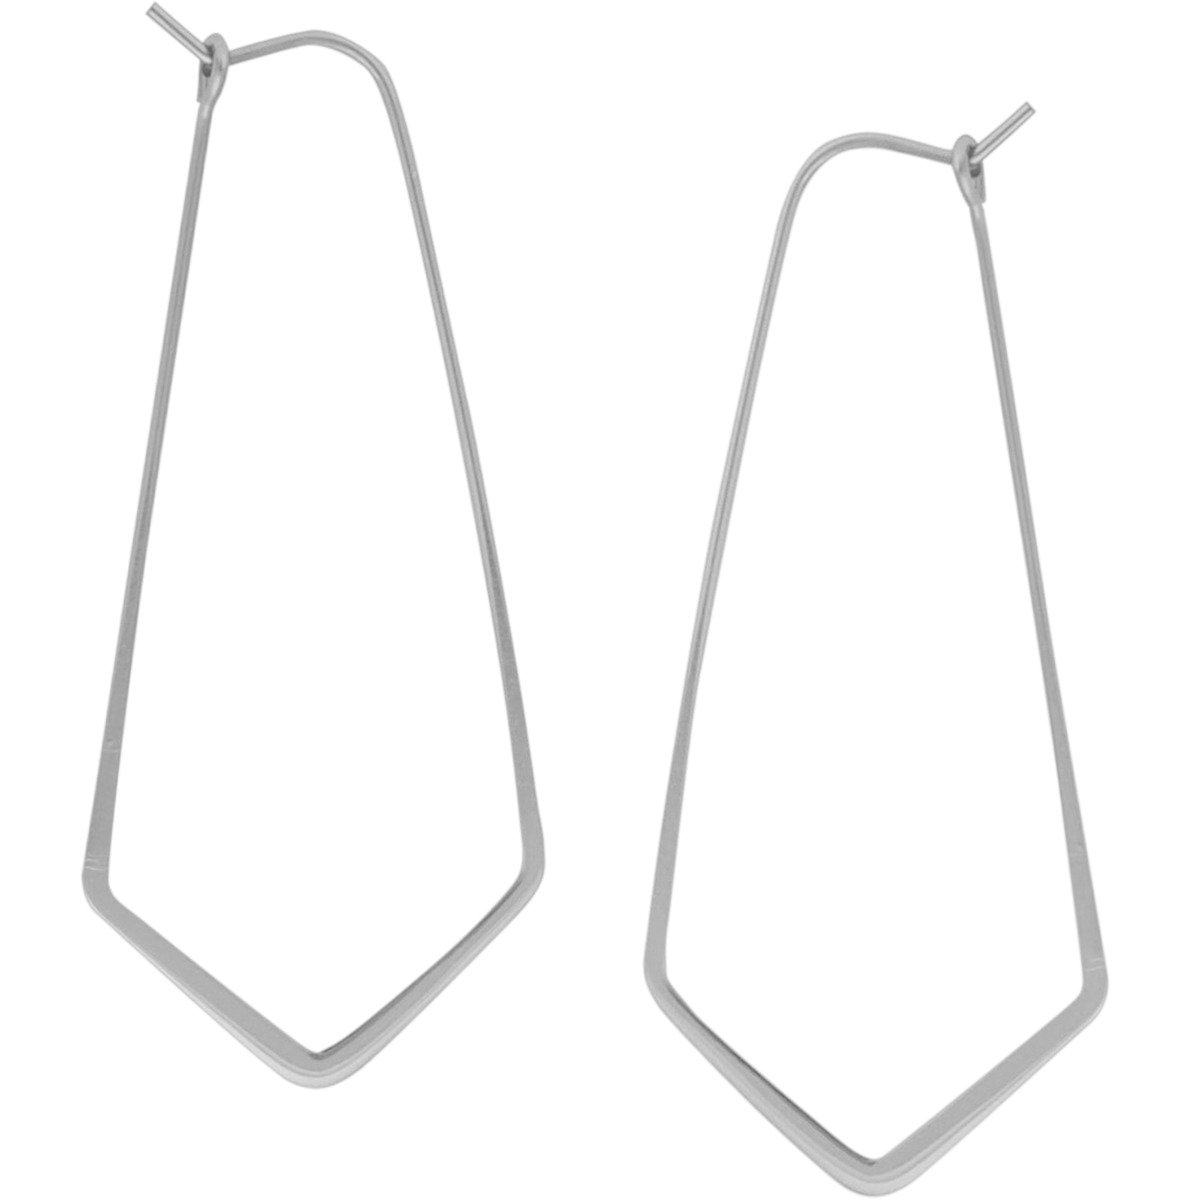 Geometric Chevron Threader Hoop Earrings - Lightweight Cutout Thin Wire Drop Dangles, 925 White - 2'', Sterling Silver-Electroplated, Hypoallergenic, by Humble Chic NY